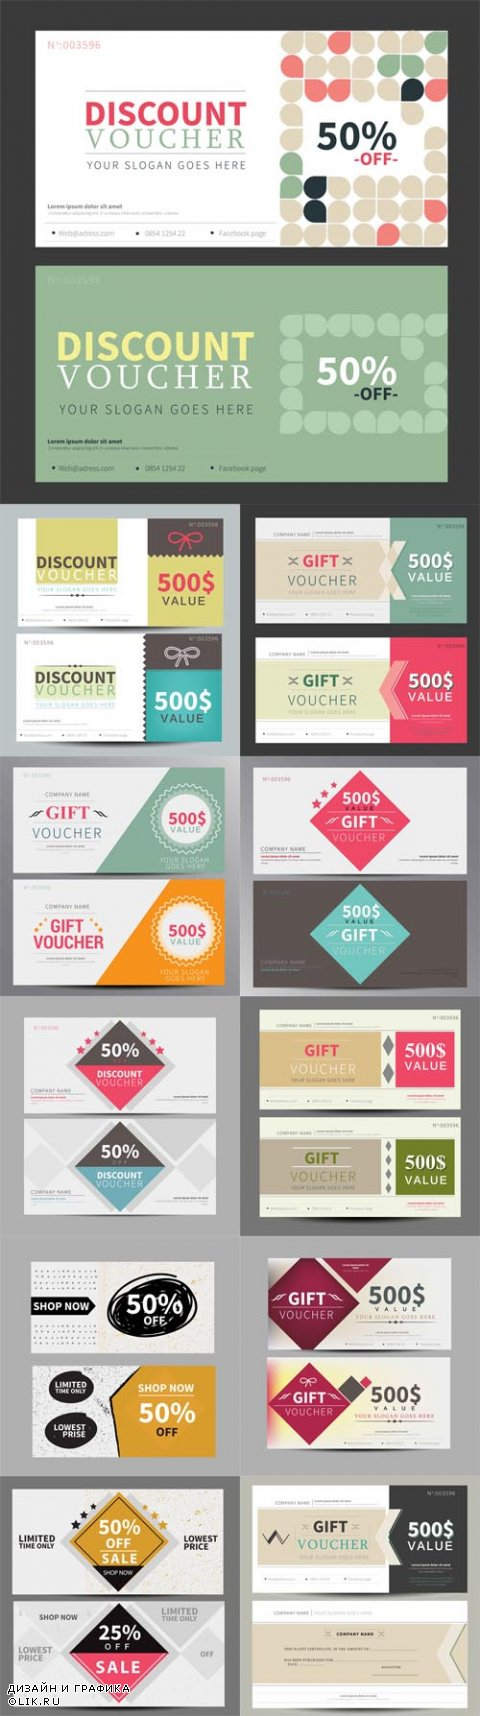 Vector Gift Vouche, Coupon Templates